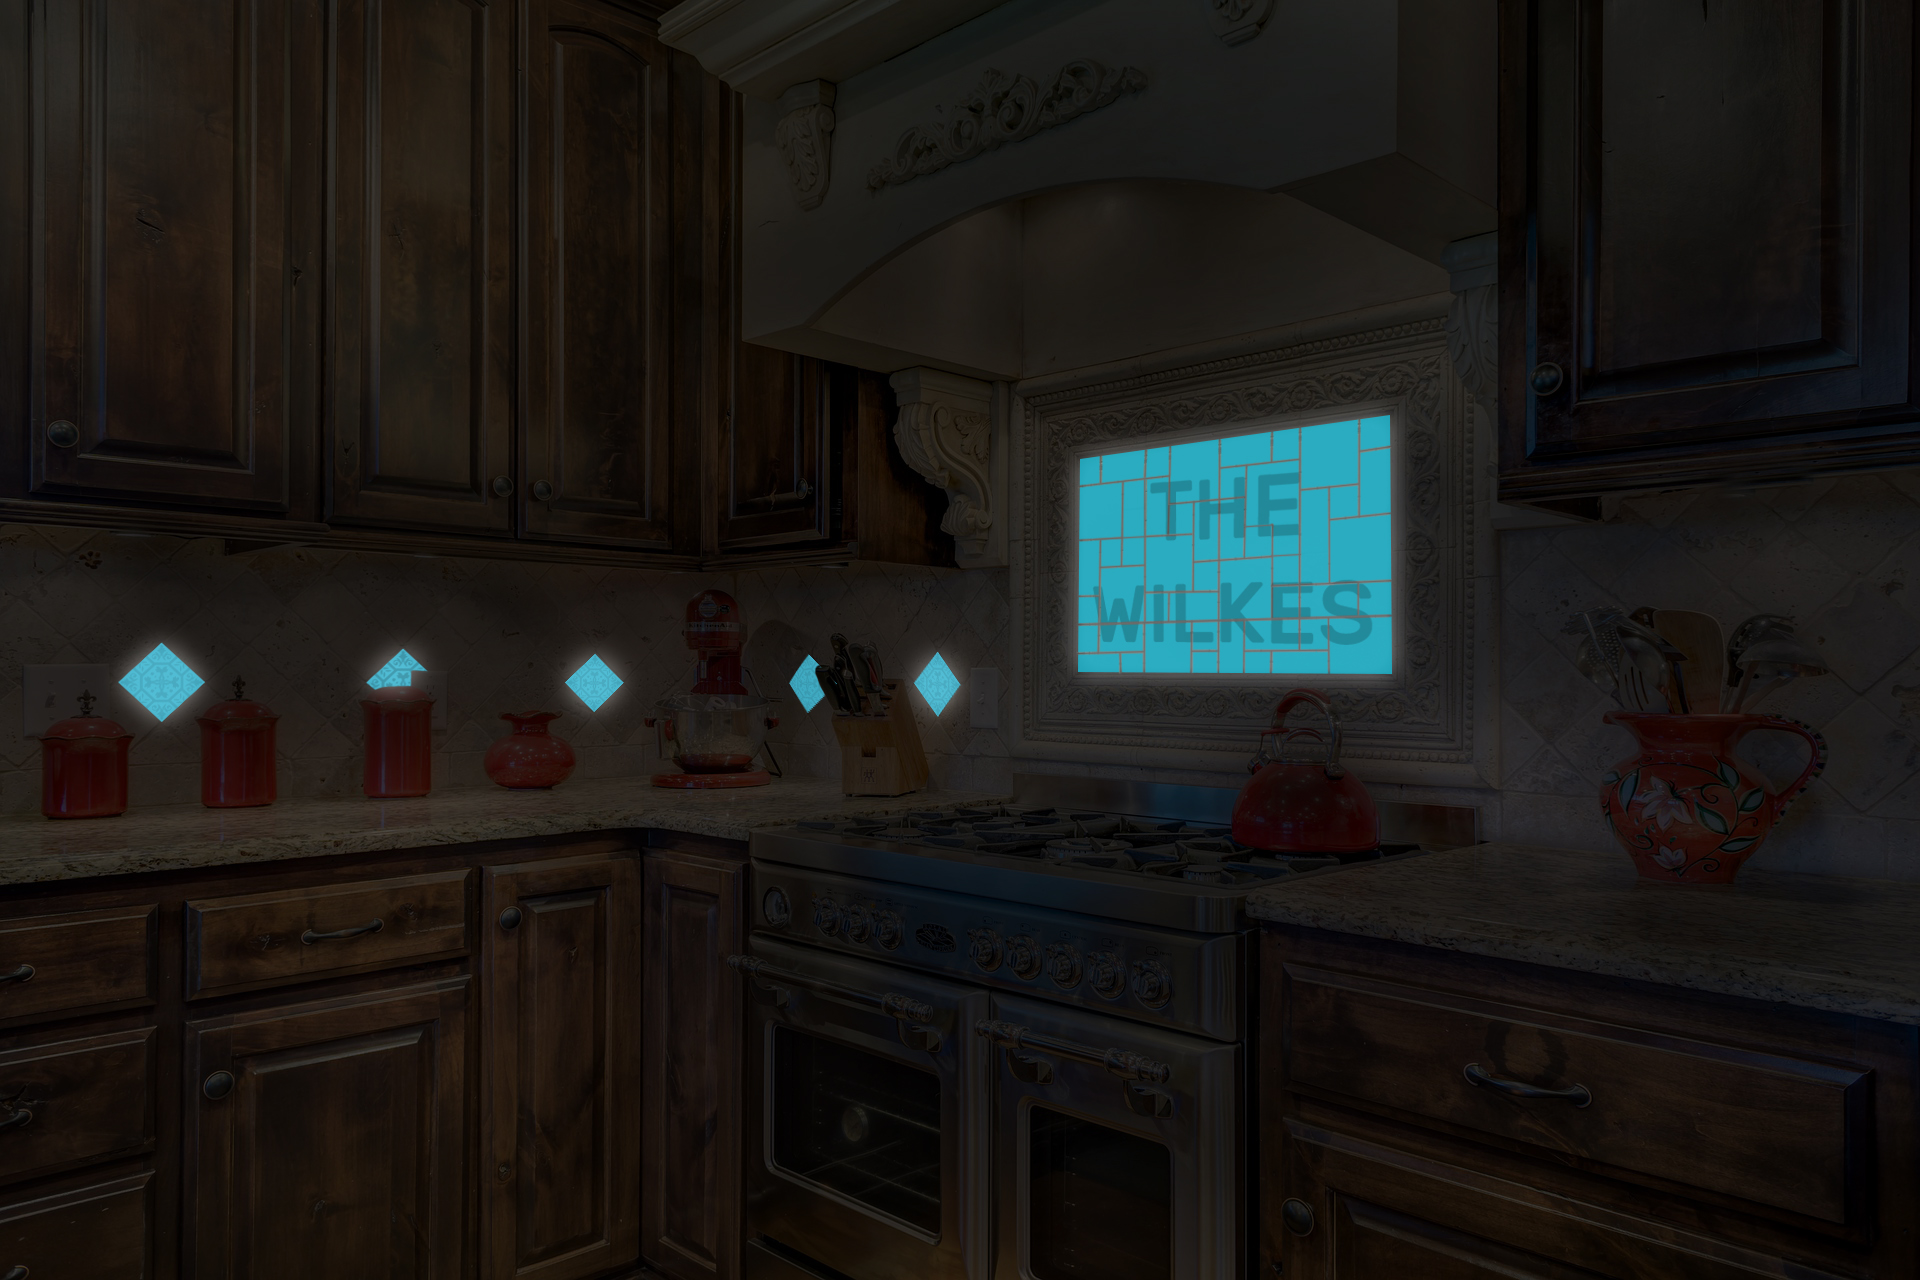 Kitchen Glowing Glass Tiles